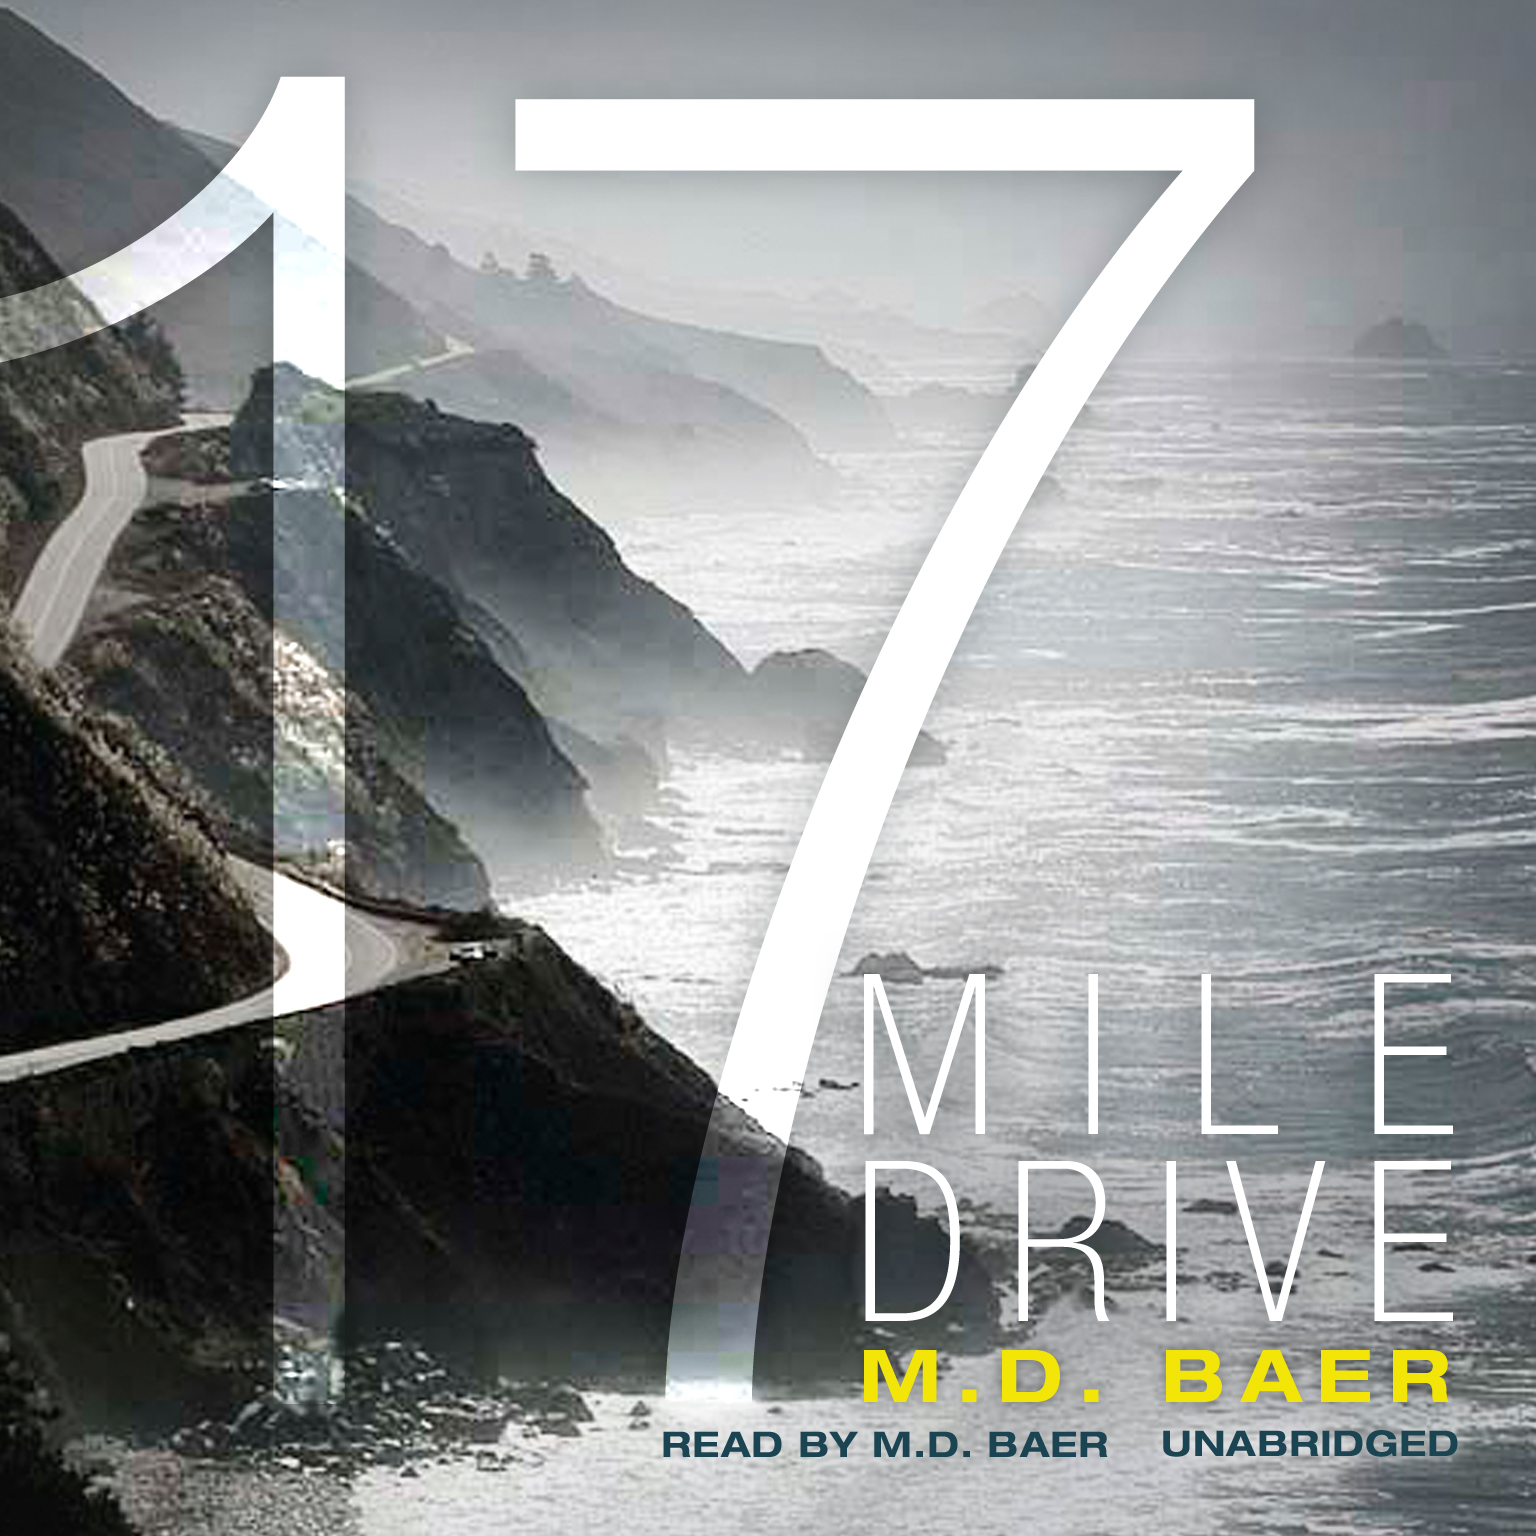 Printable 17 Mile Drive Audiobook Cover Art